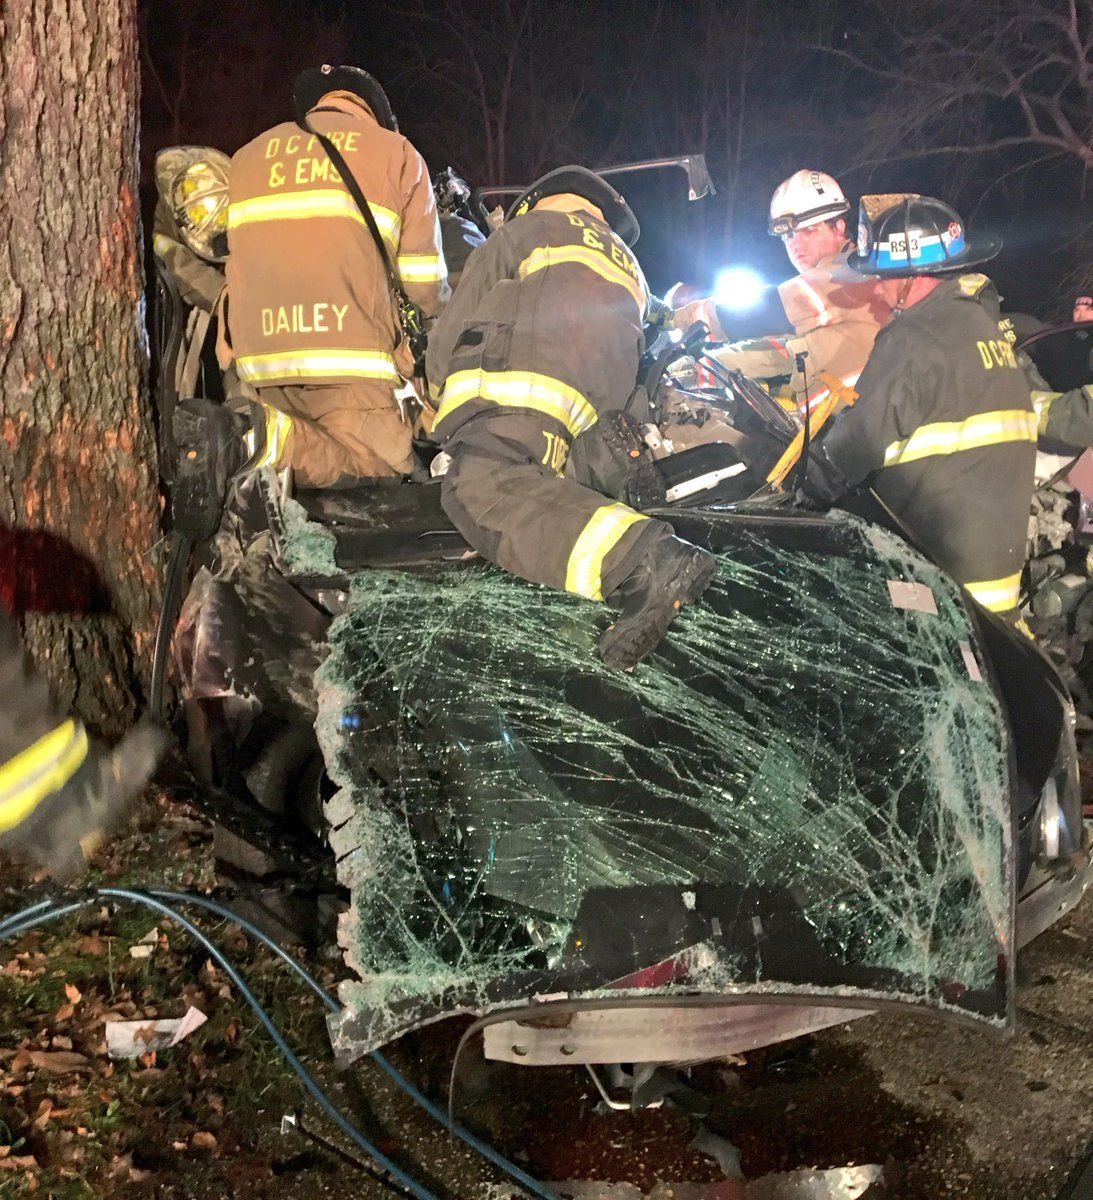 Four people were involved in a serious crash near the National Mall on Sunday, Dec. 12, 2018. One person has died and other was airlifted to the hospital by U.S. Park police. D.C. Fire and EMS tweeted this photo of emergency responders at the scene. (D.C. Fire and EMS via Twitter)